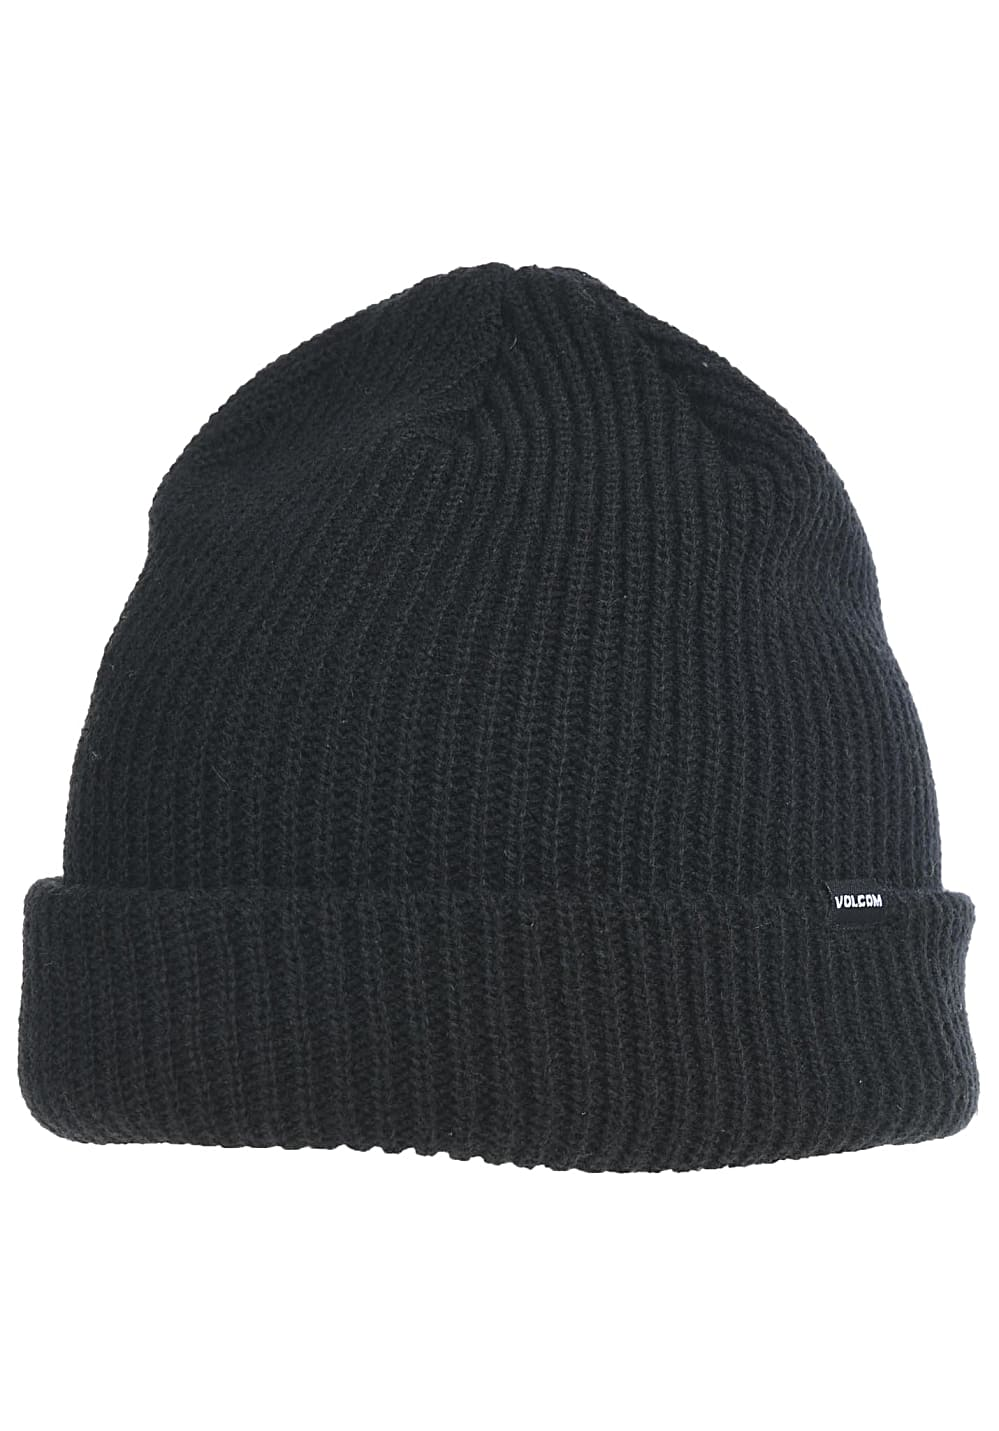 b30f194e434 ... Volcom Sweep Lined - Beanie for Men - Black. Back to Overview. 1  2  3.  Previous